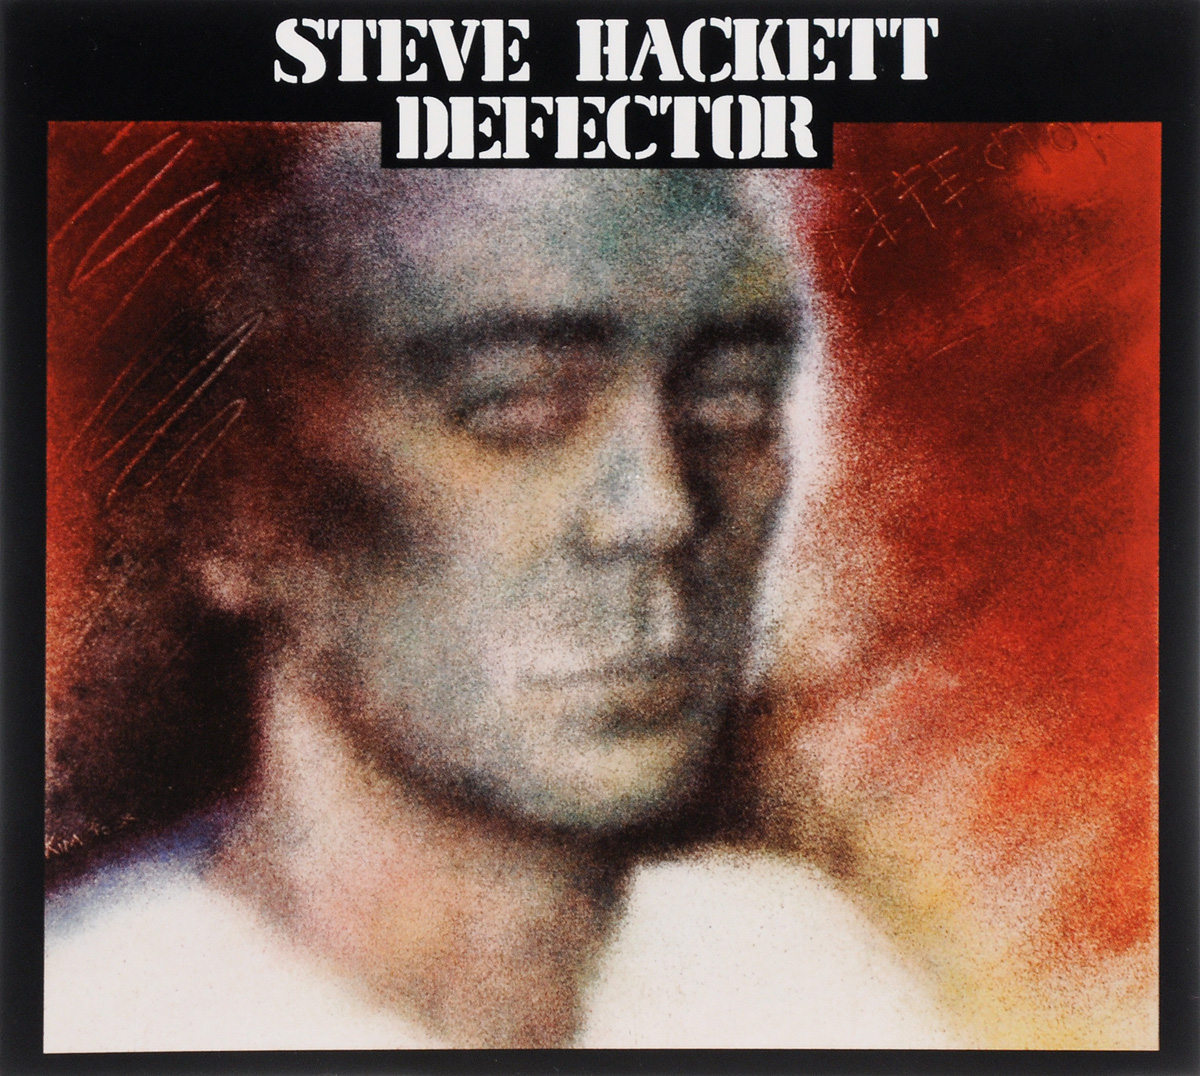 Стив Хэкетт Steve Hackett. Defector (2 CD + DVD) блокада 2 dvd